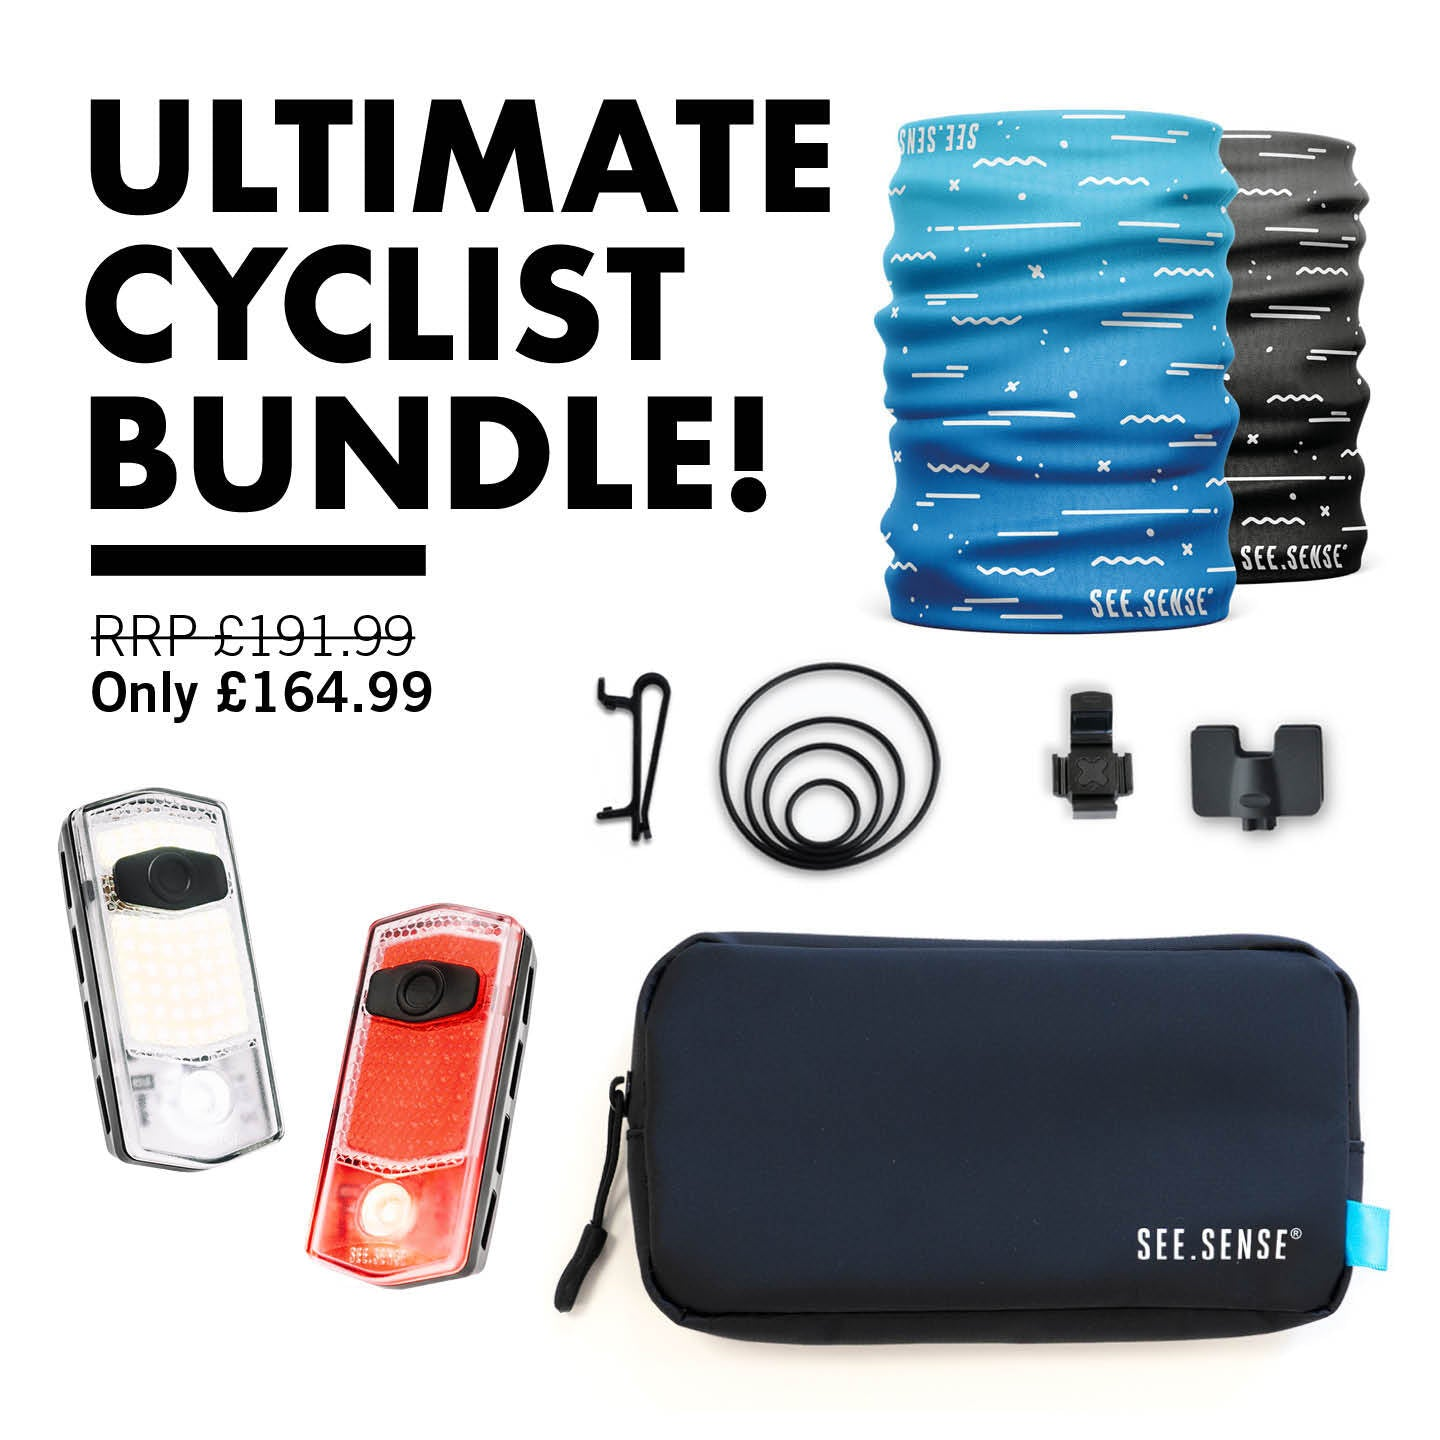 Ultimate Cyclist Bundle